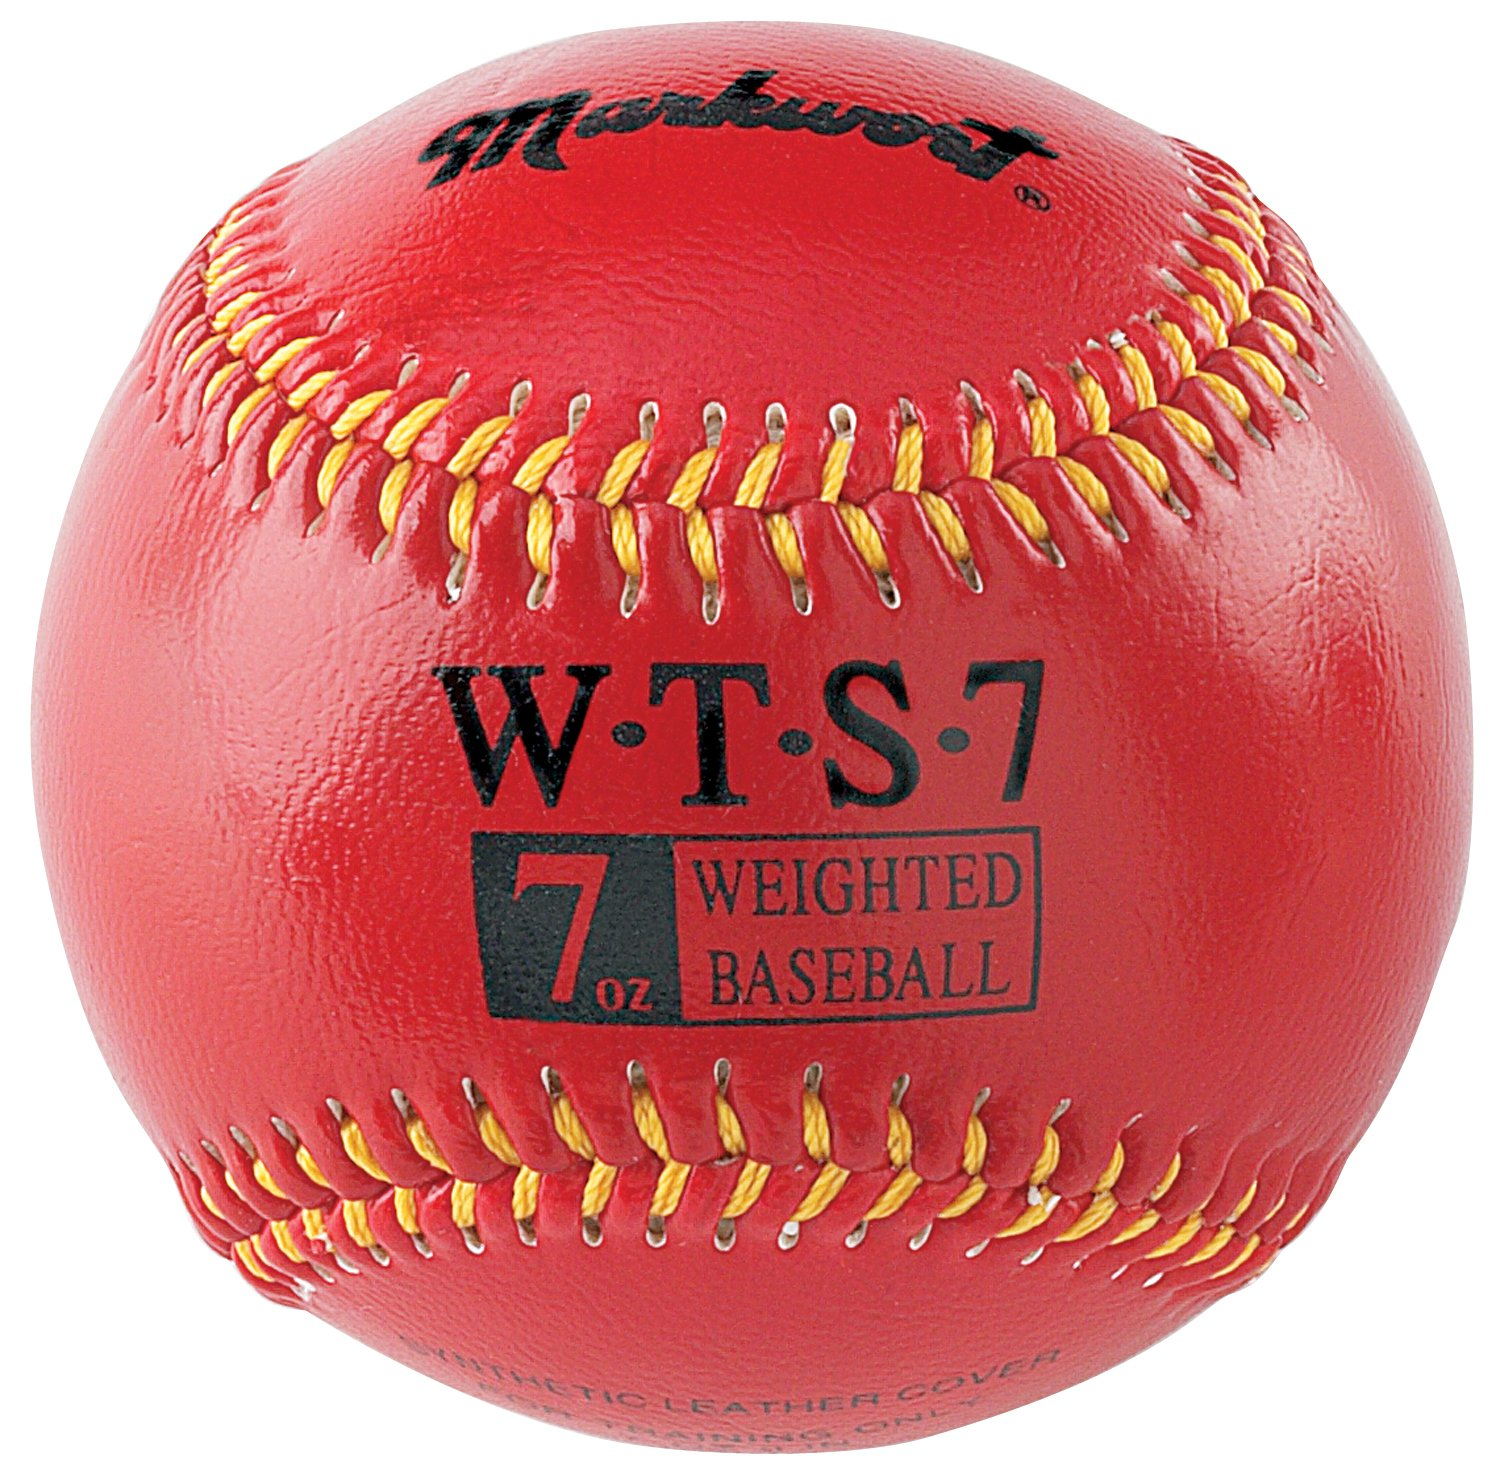 Markwort Synthetic Cover Weighted Baseball, Black, 12-Ounce WTS12